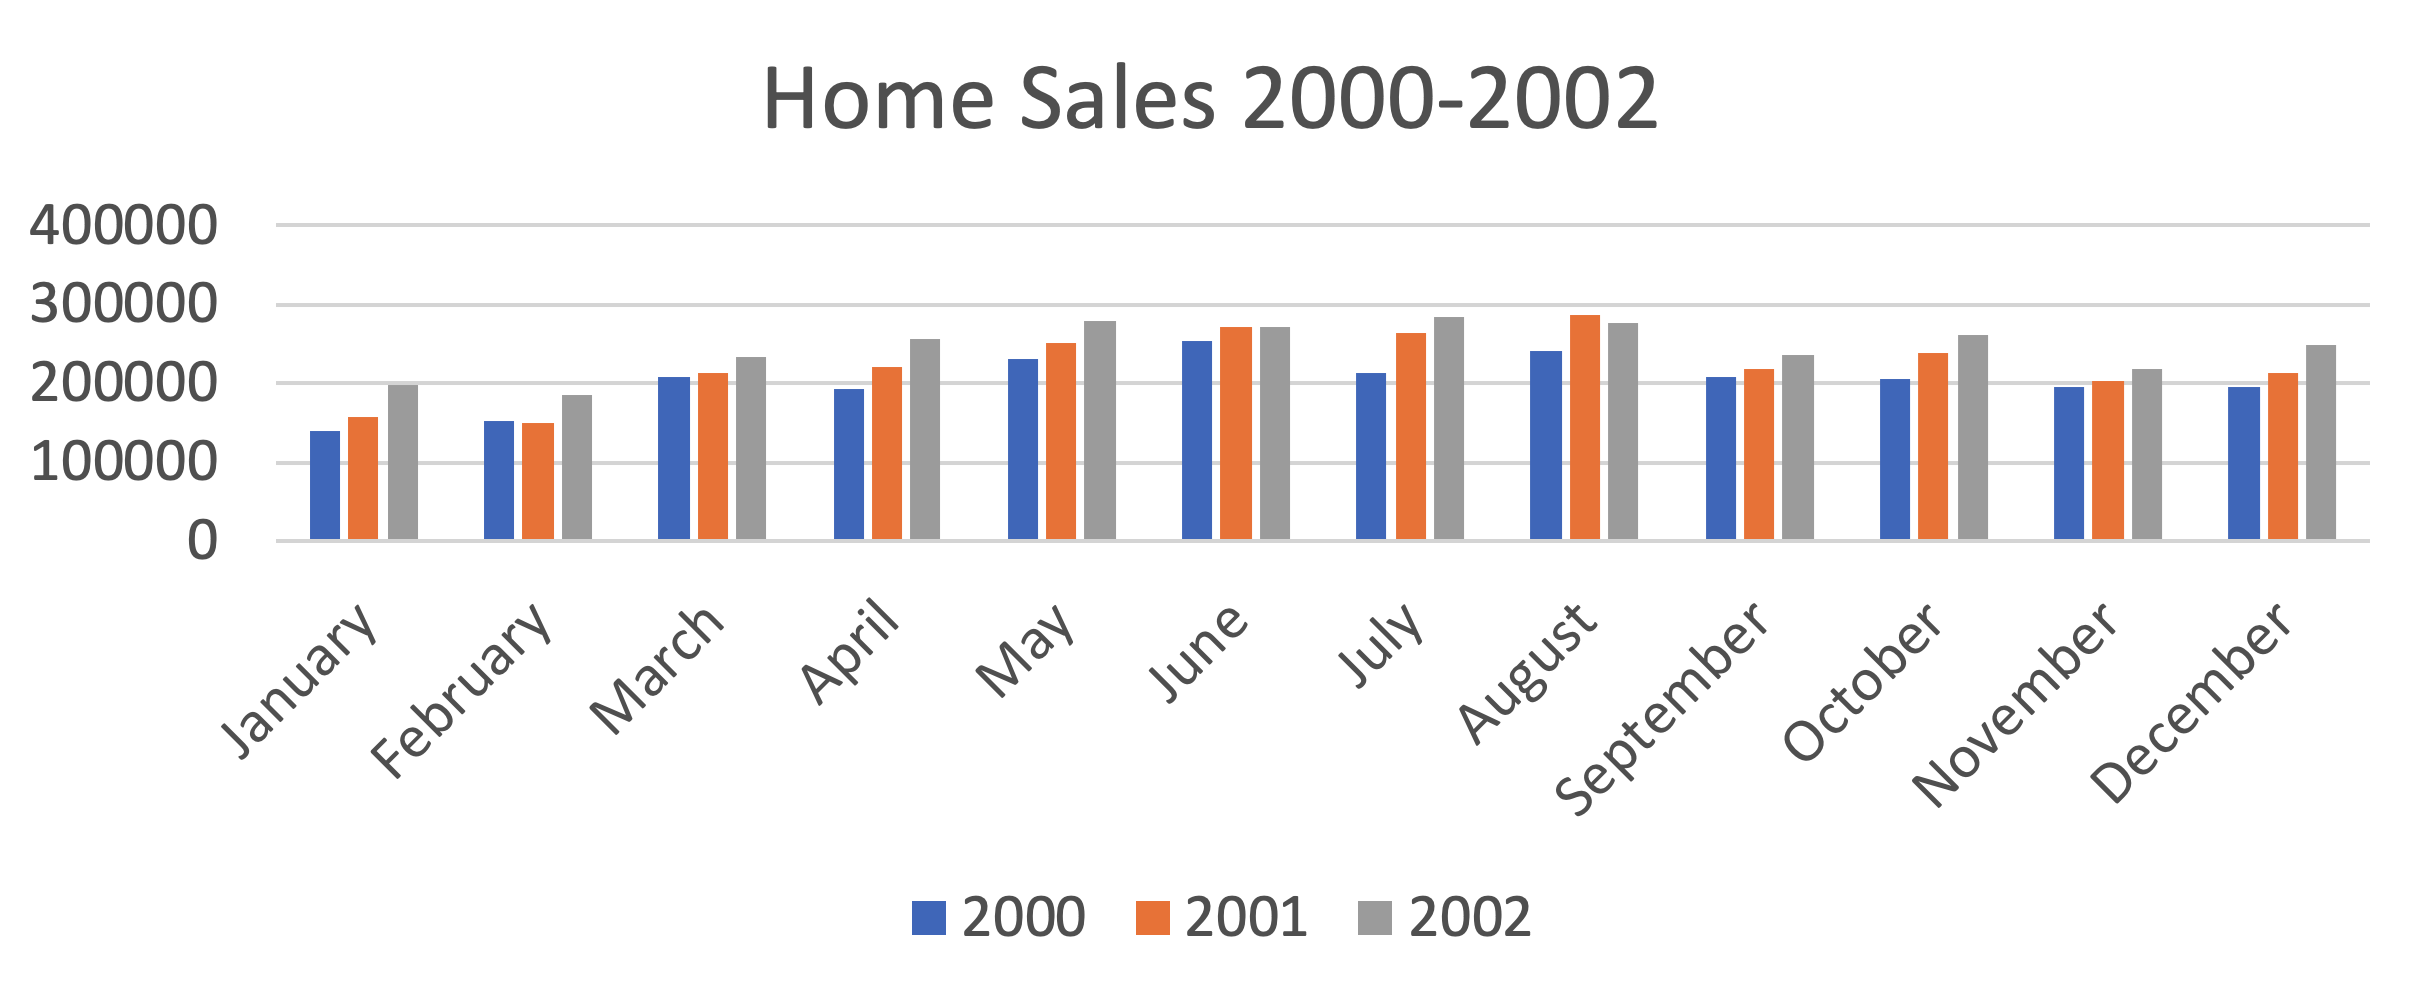 home sales 2000-2002